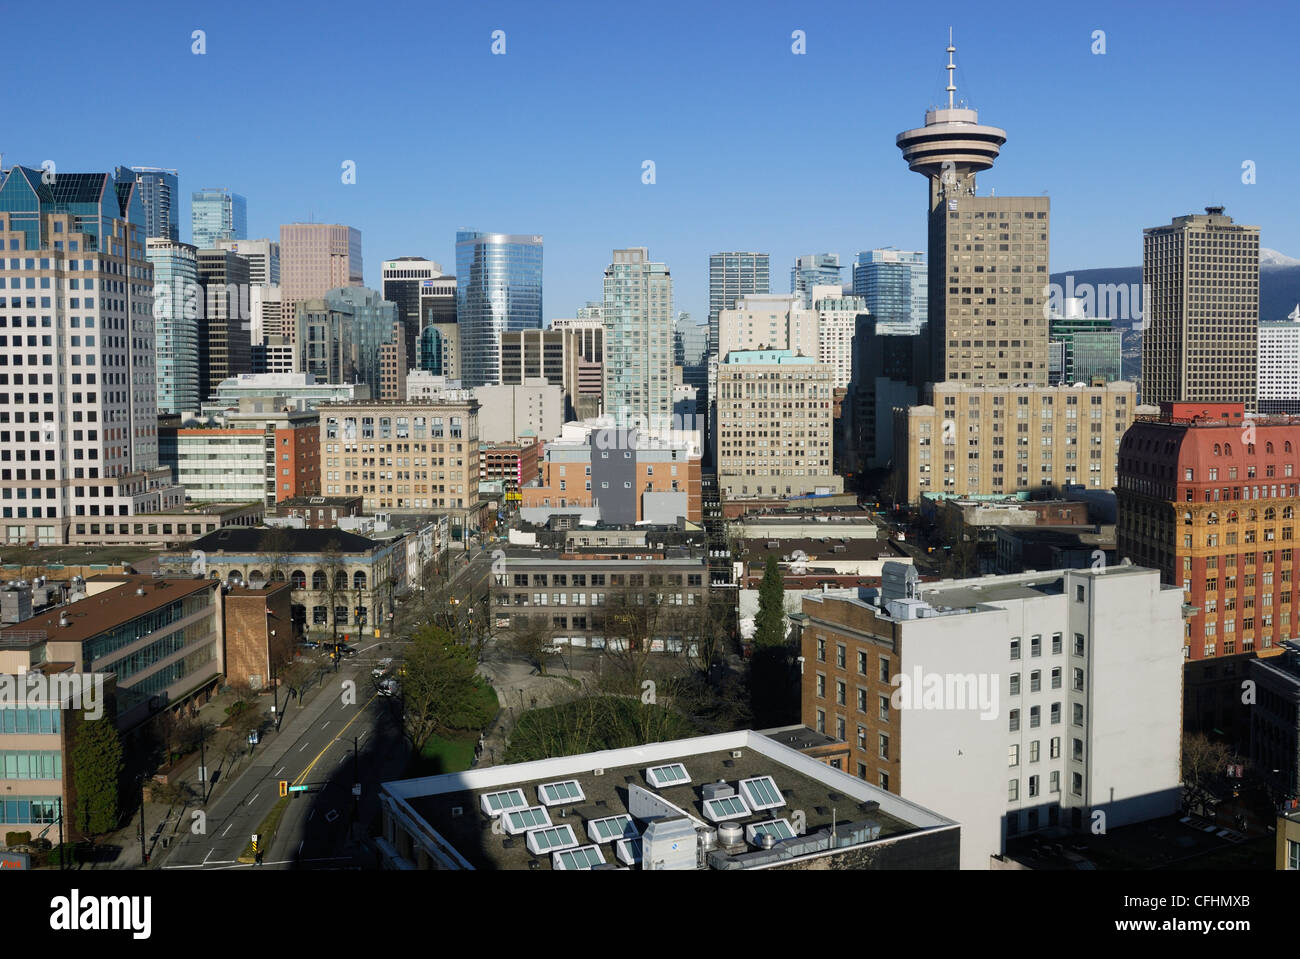 Vancouver  as seen looking west towards the downtown core, with its mixture of old and new buildings. Stock Photo